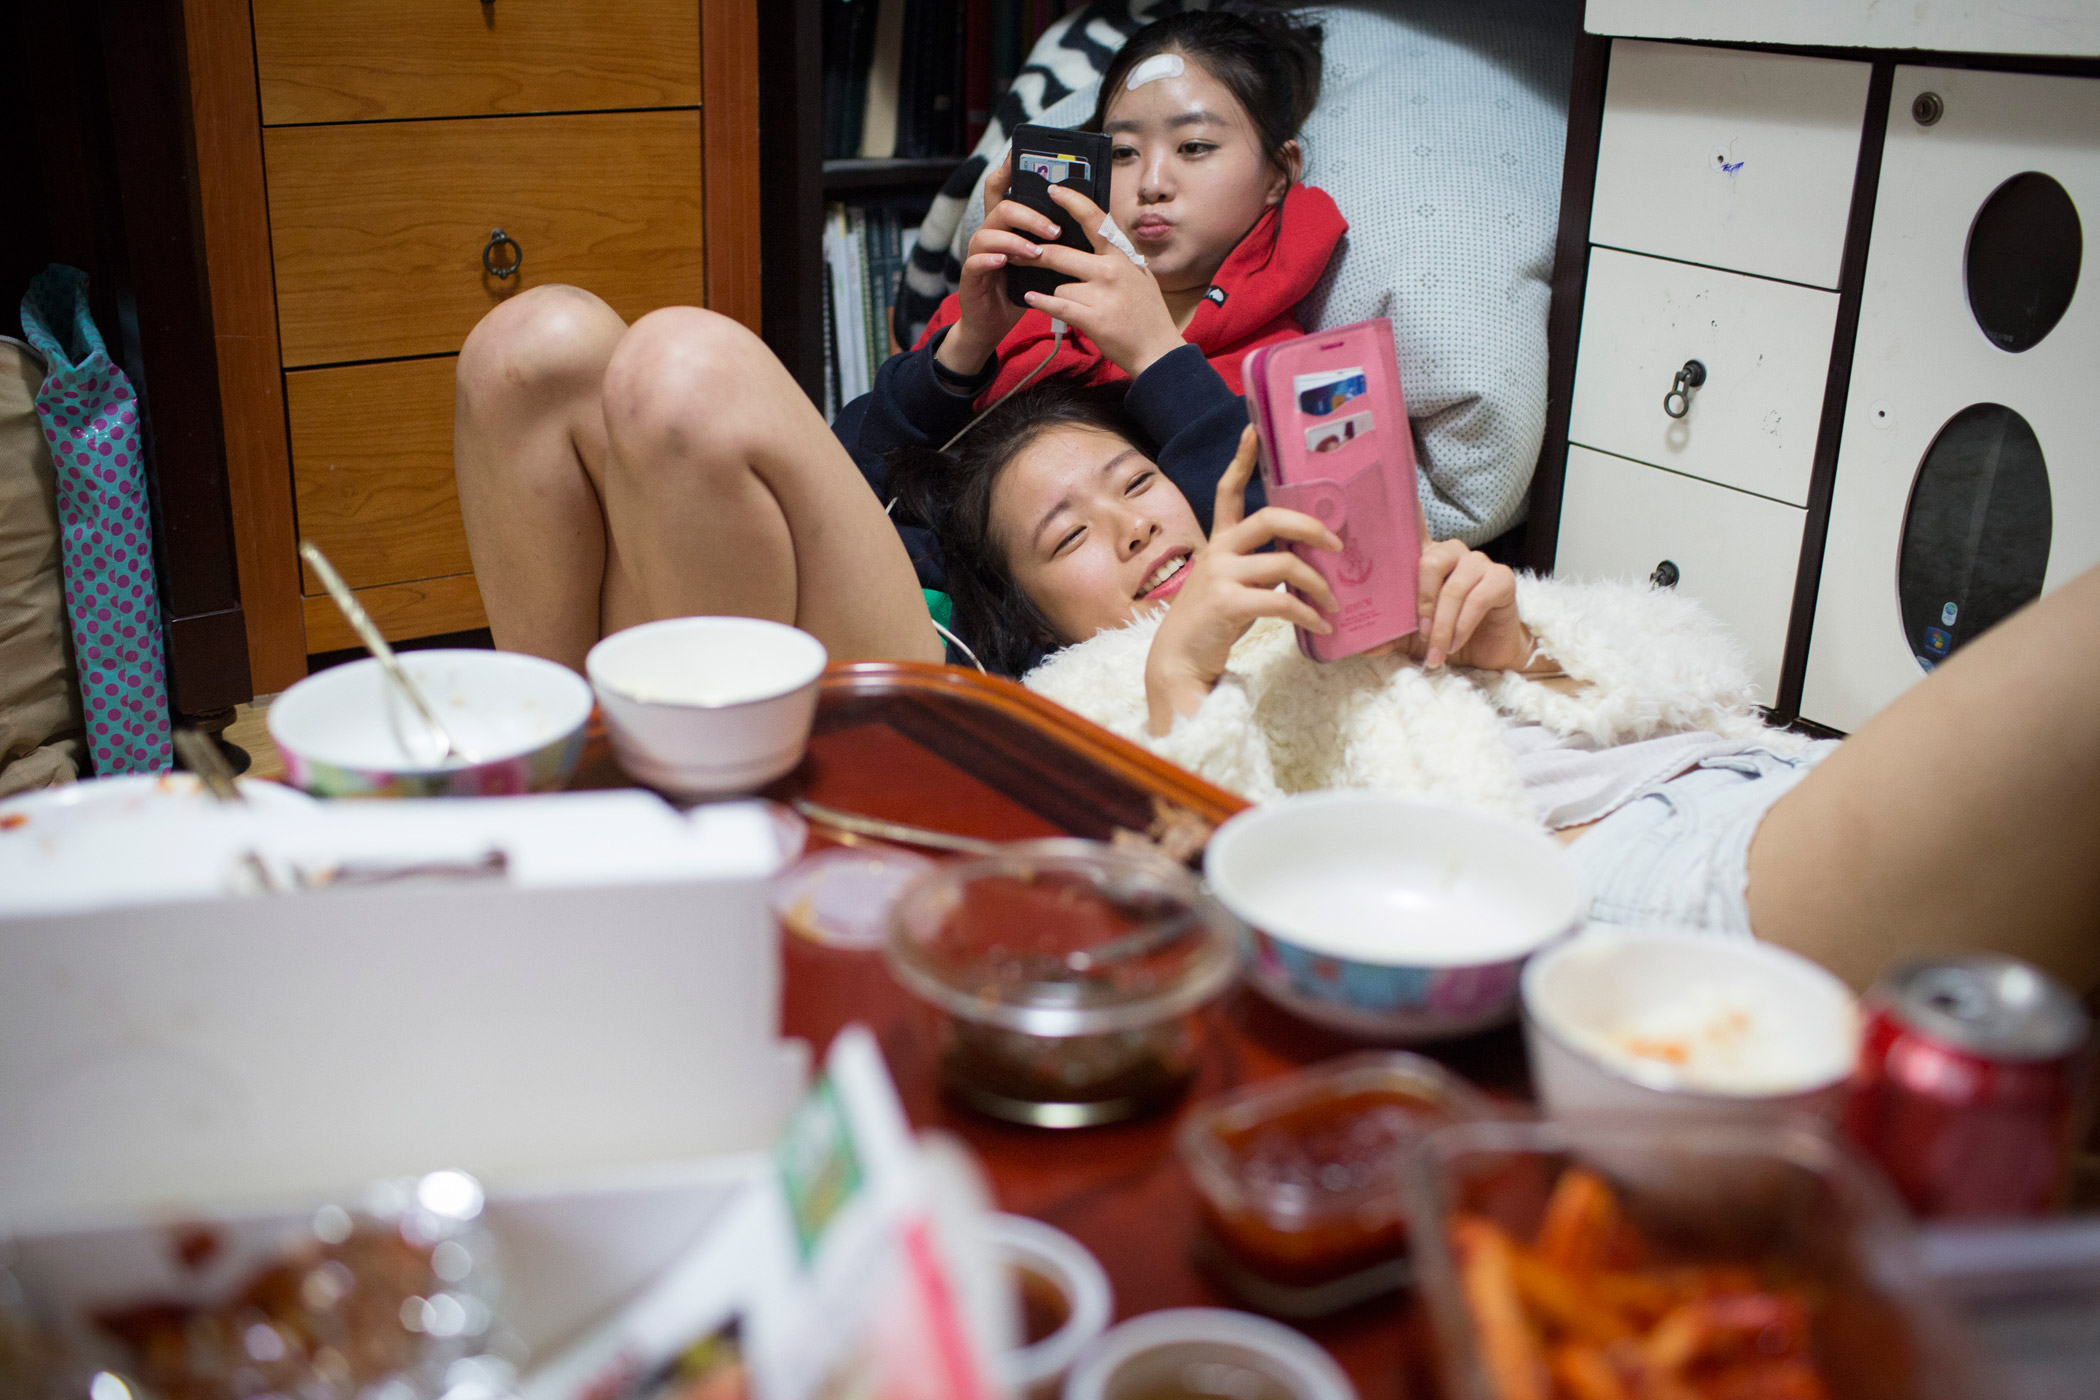 Kyoung-ok and Sarah spend time on their phones after sharing takeout for dinner at Kyoung-ok's apartment on Feb. 28, 2015 in Mia, Seoul, South Korea.